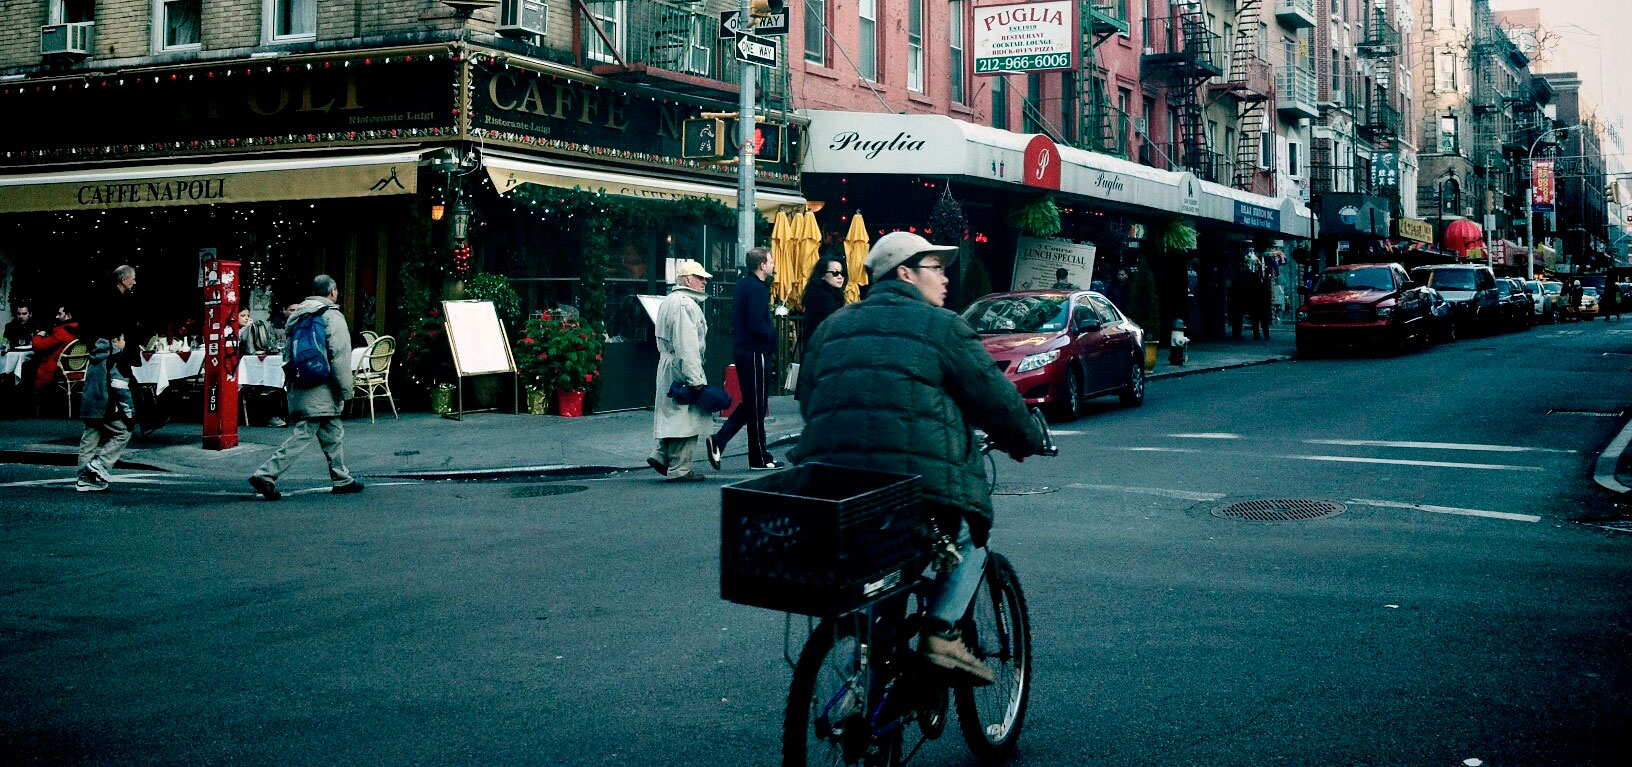 street scene of NYC with bicycle delivery person in foreground